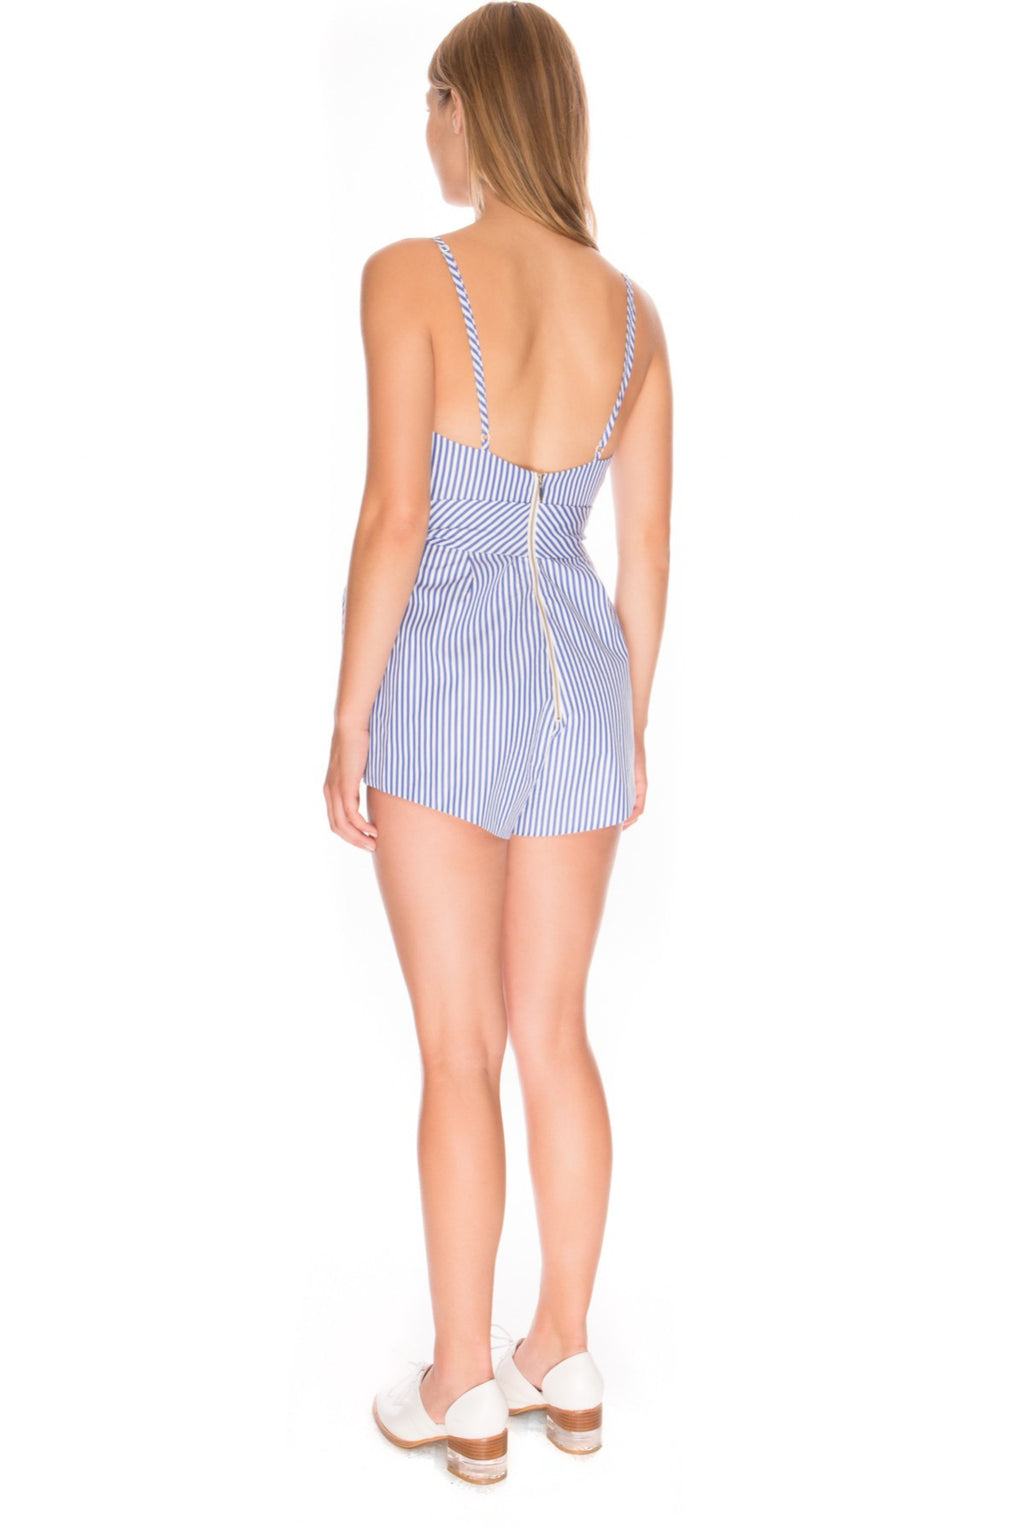 Blow Your Mind Playsuit - Sallyrose